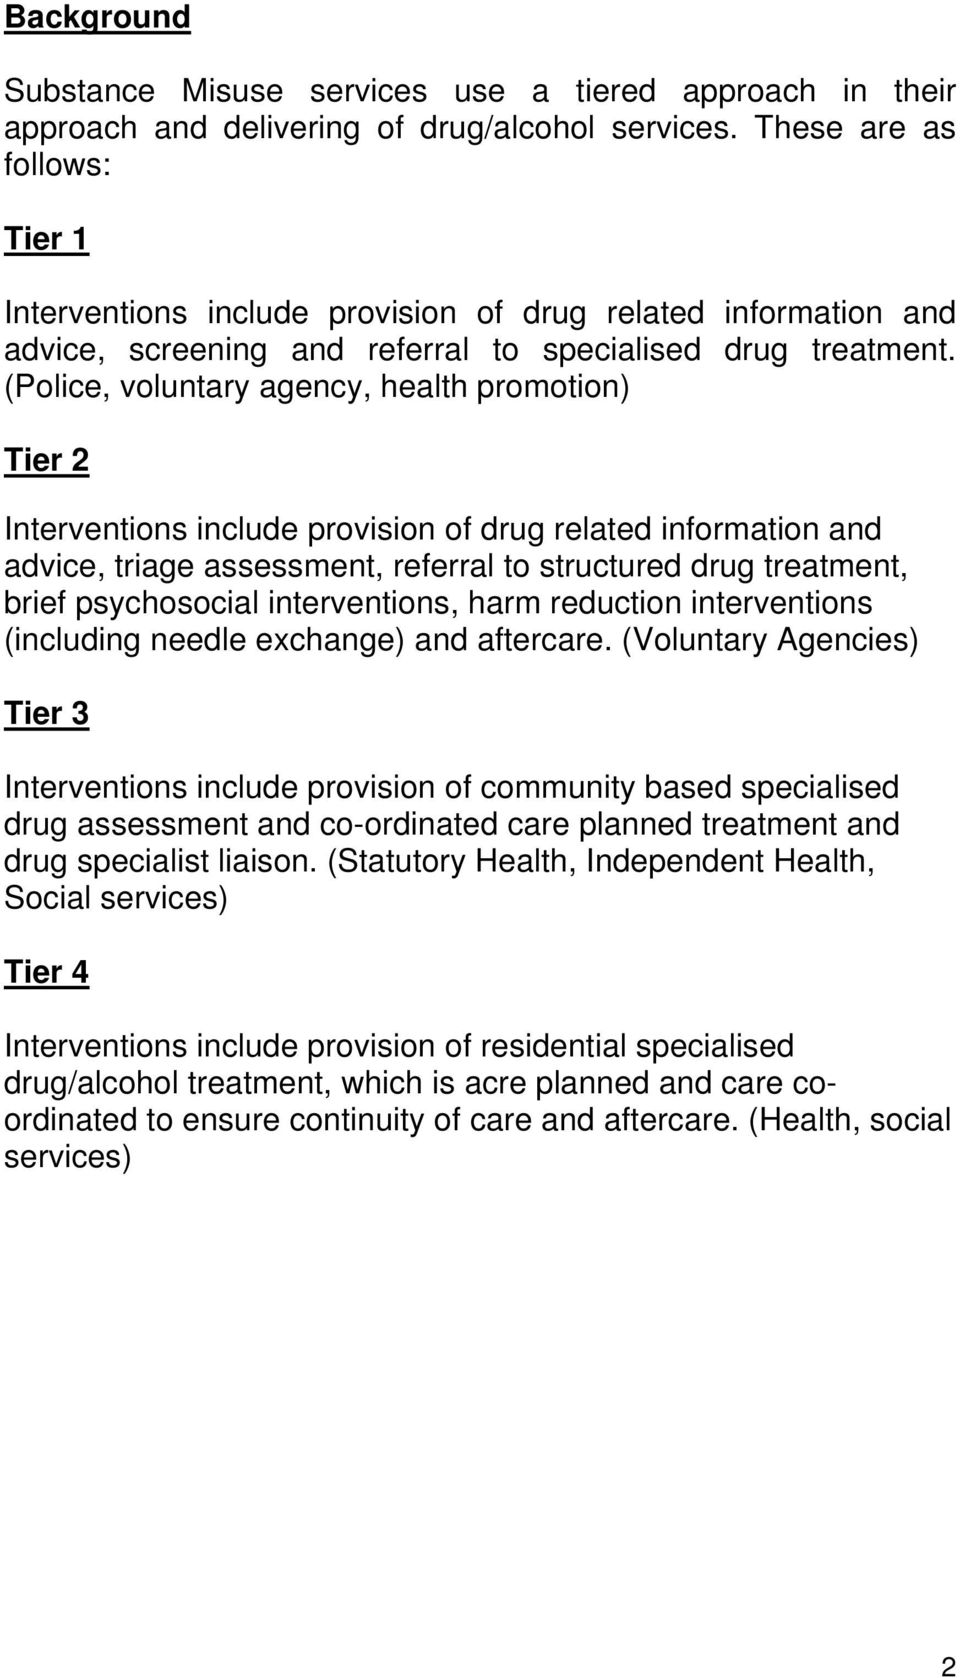 (Police, voluntary agency, health promotion) Tier 2 Interventions include provision of drug related information and advice, triage assessment, referral to structured drug treatment, brief